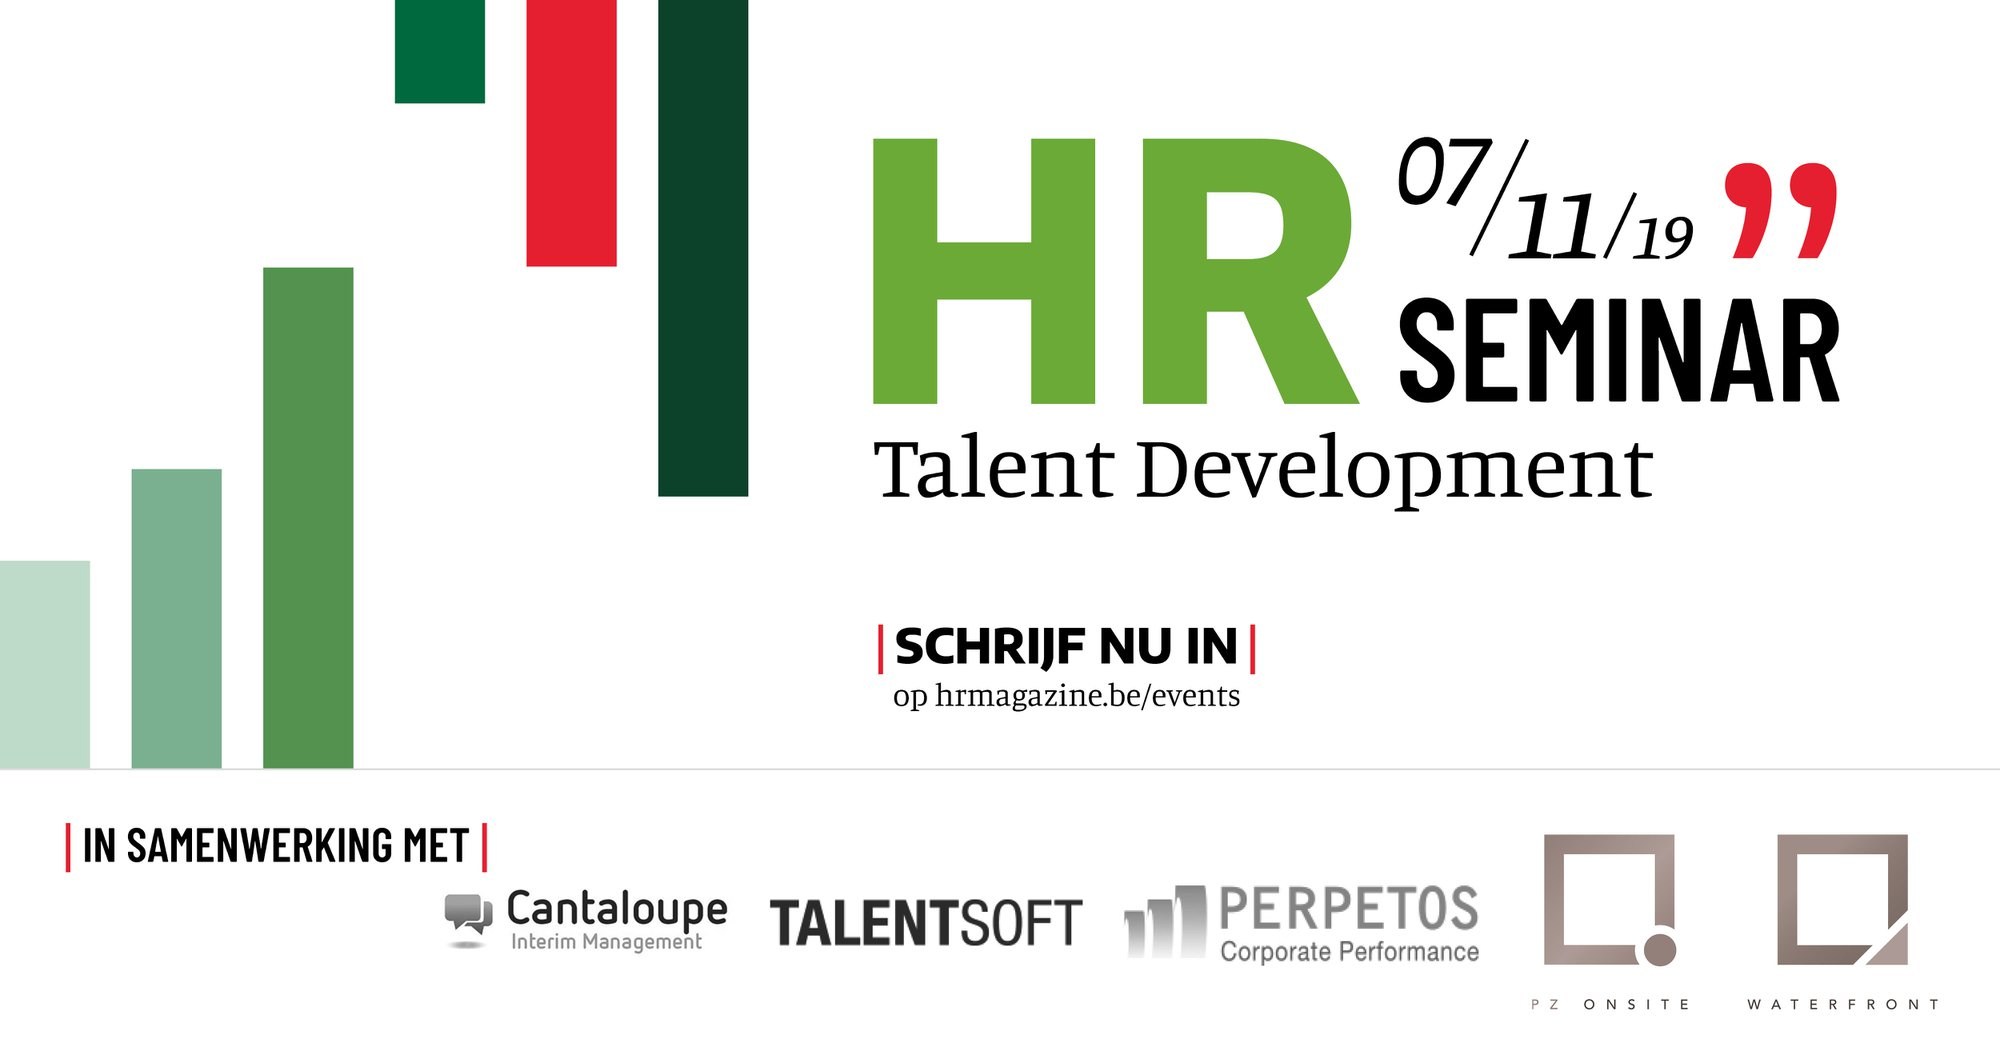 HRseminar Talent Development | 7 november 2019